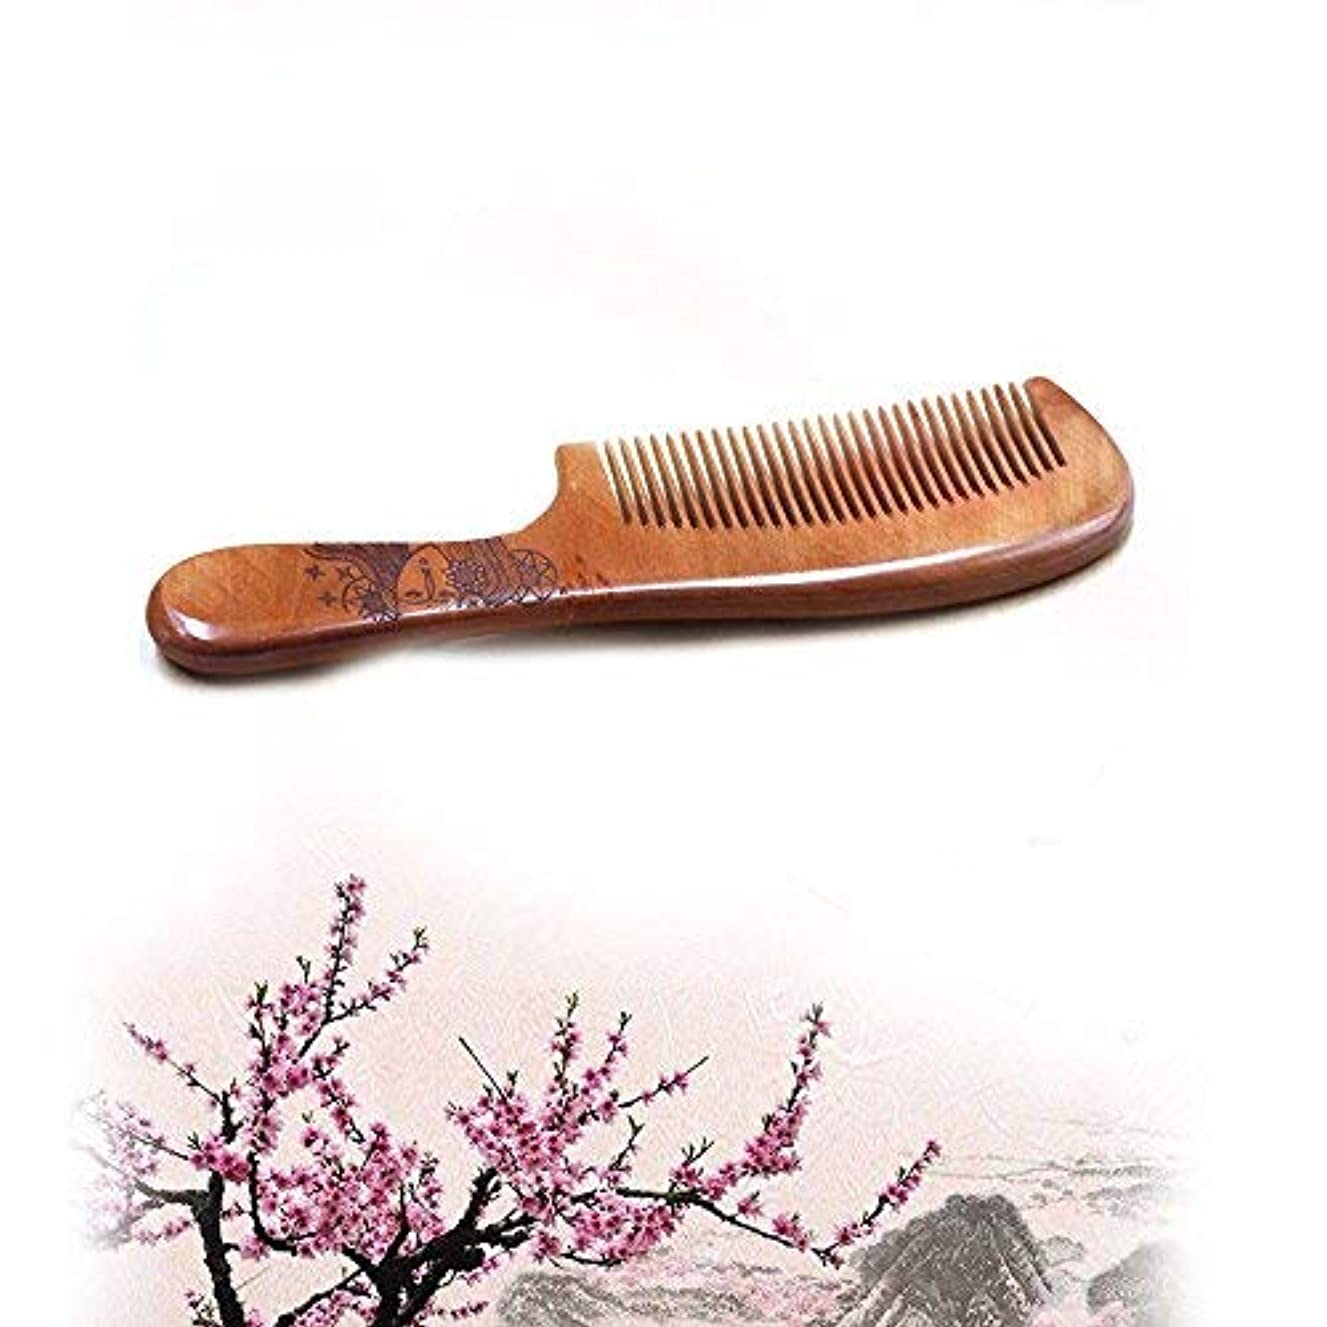 Universal Natural Hair Comb,Victory Detangling Wooden Combs No Static Peach Wood for Men,Women and Kids (long)...